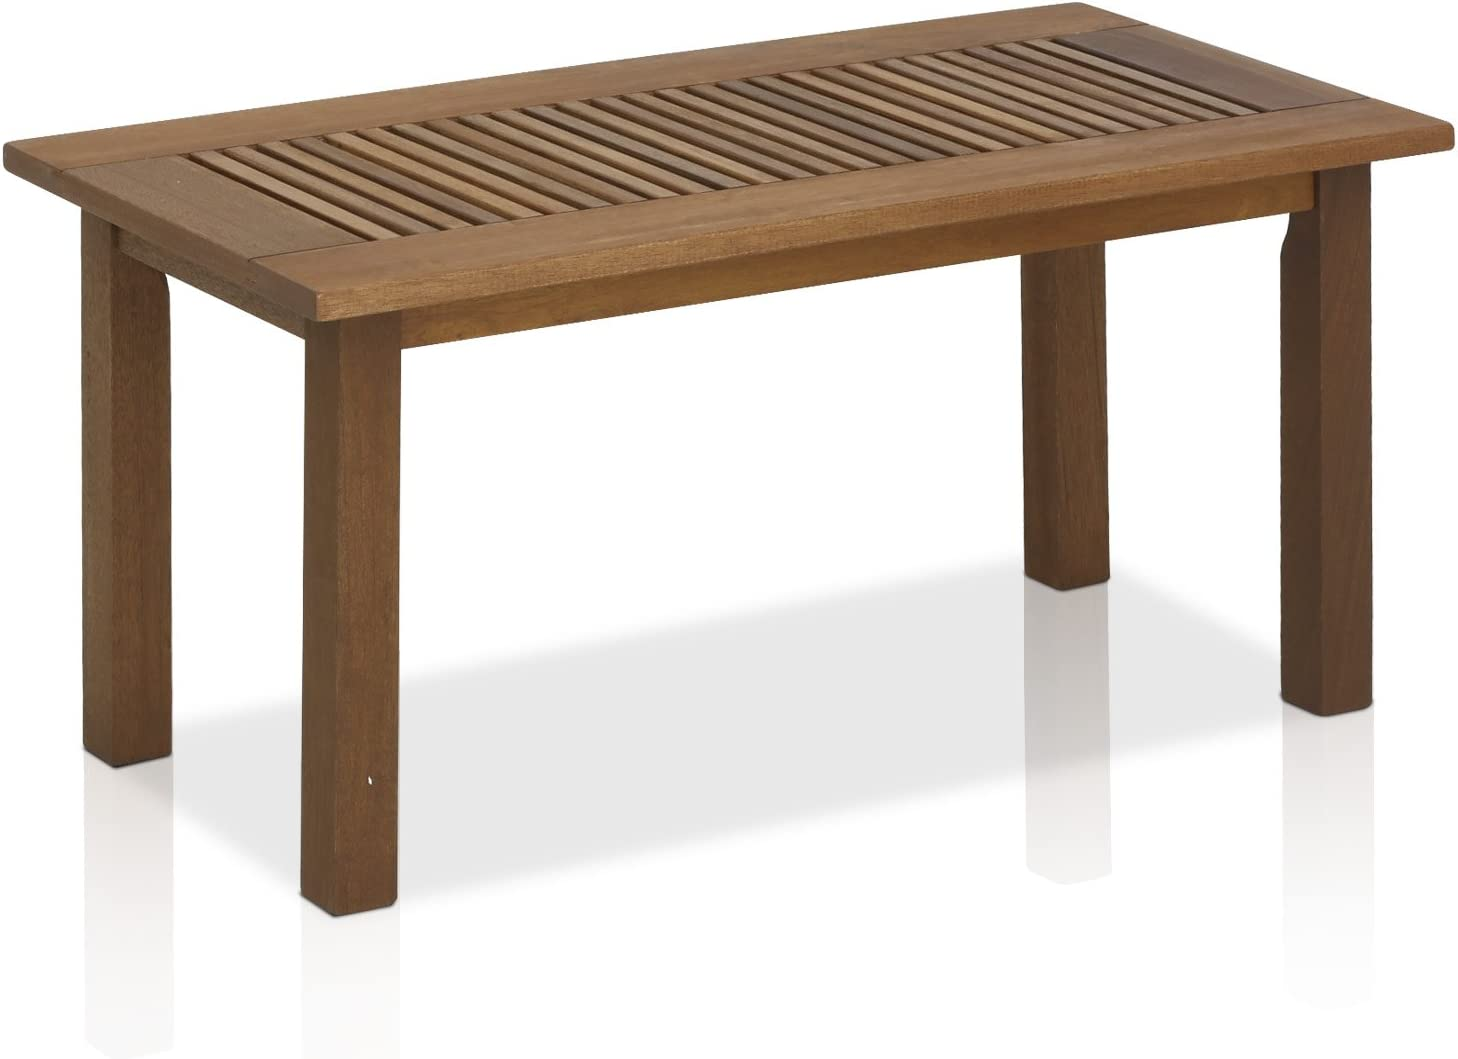 Furinno FG16504 Tioman Hardwood Patio Furniture Outdoor Coffee Table in Teak Oil, 1-Tier, Natural : Garden & Outdoor